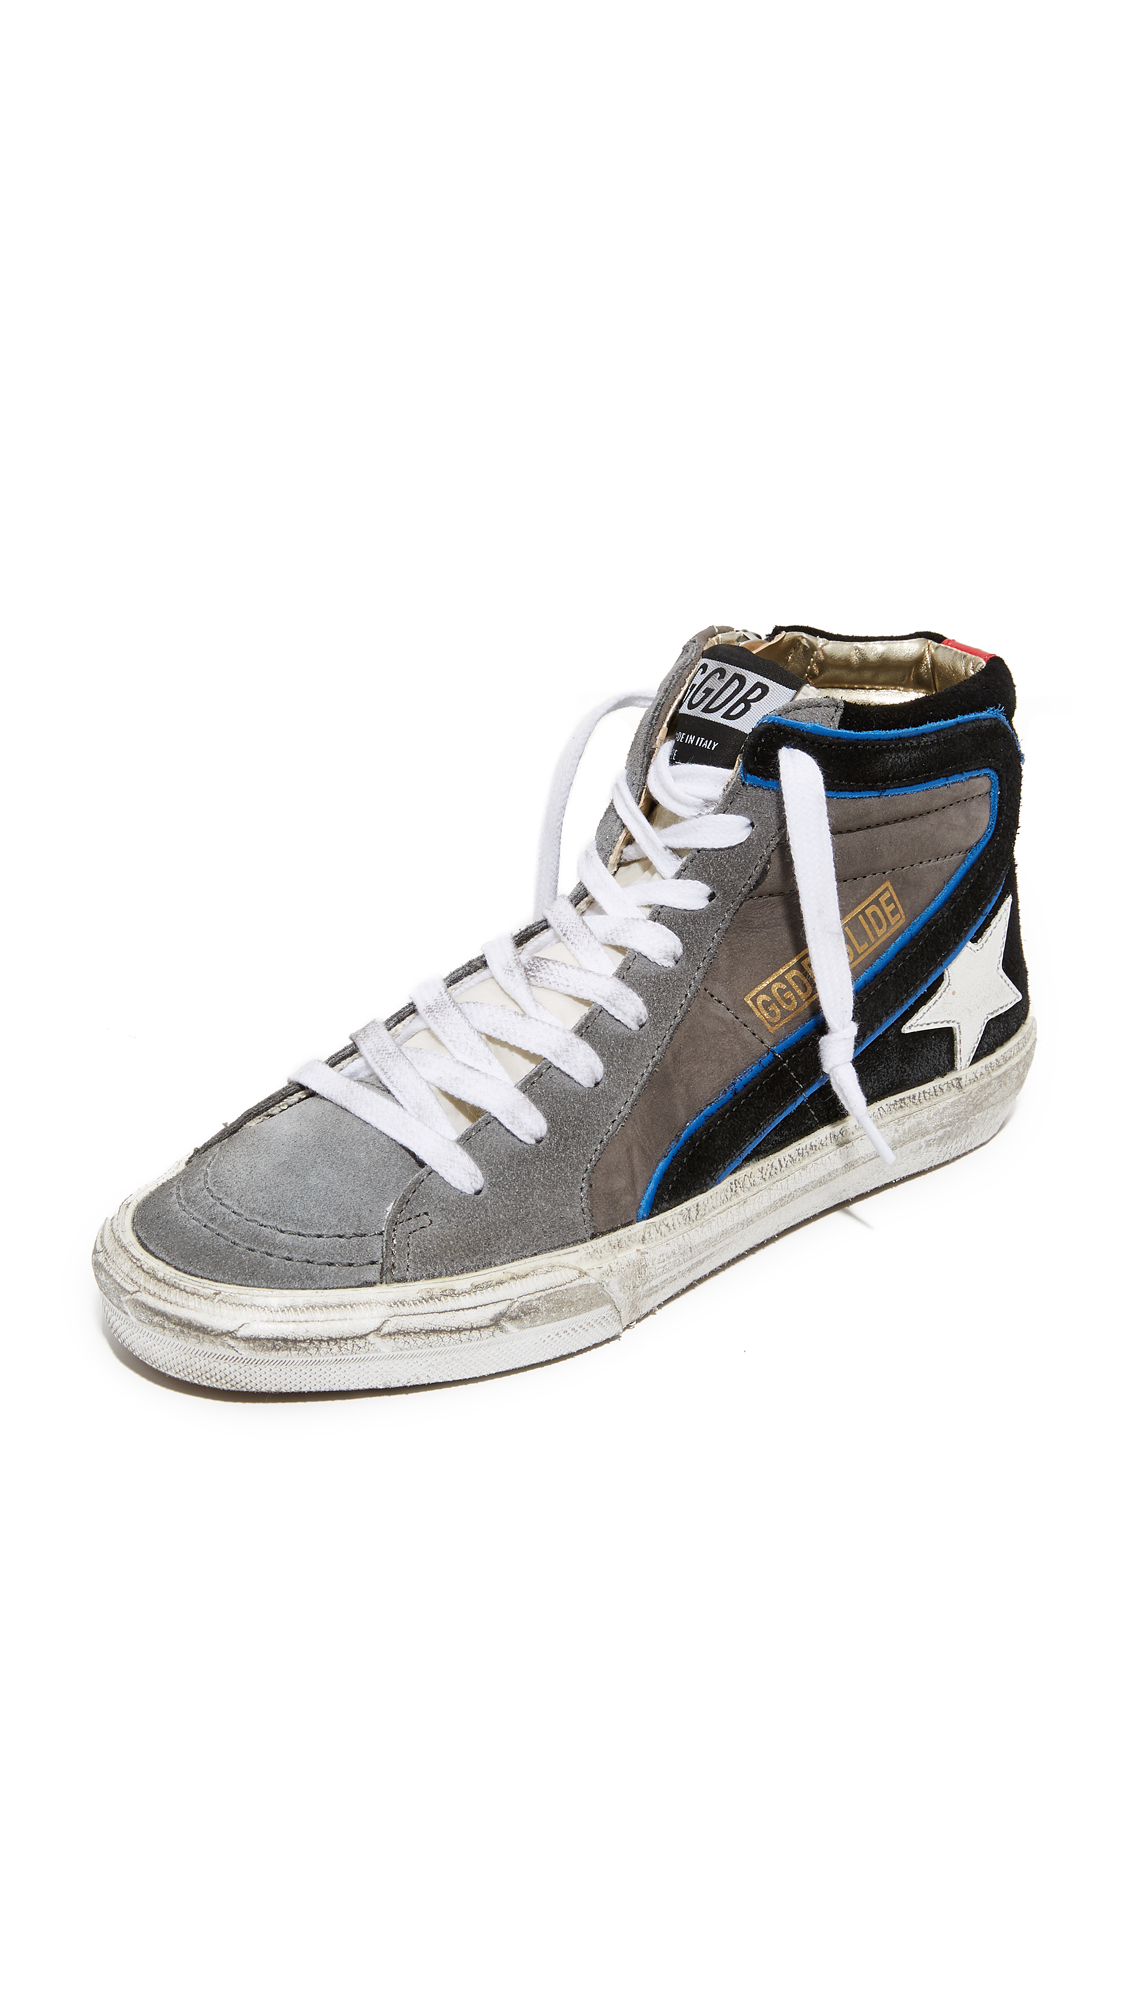 Golden Goose Slide Sneakers - Lavagna/White